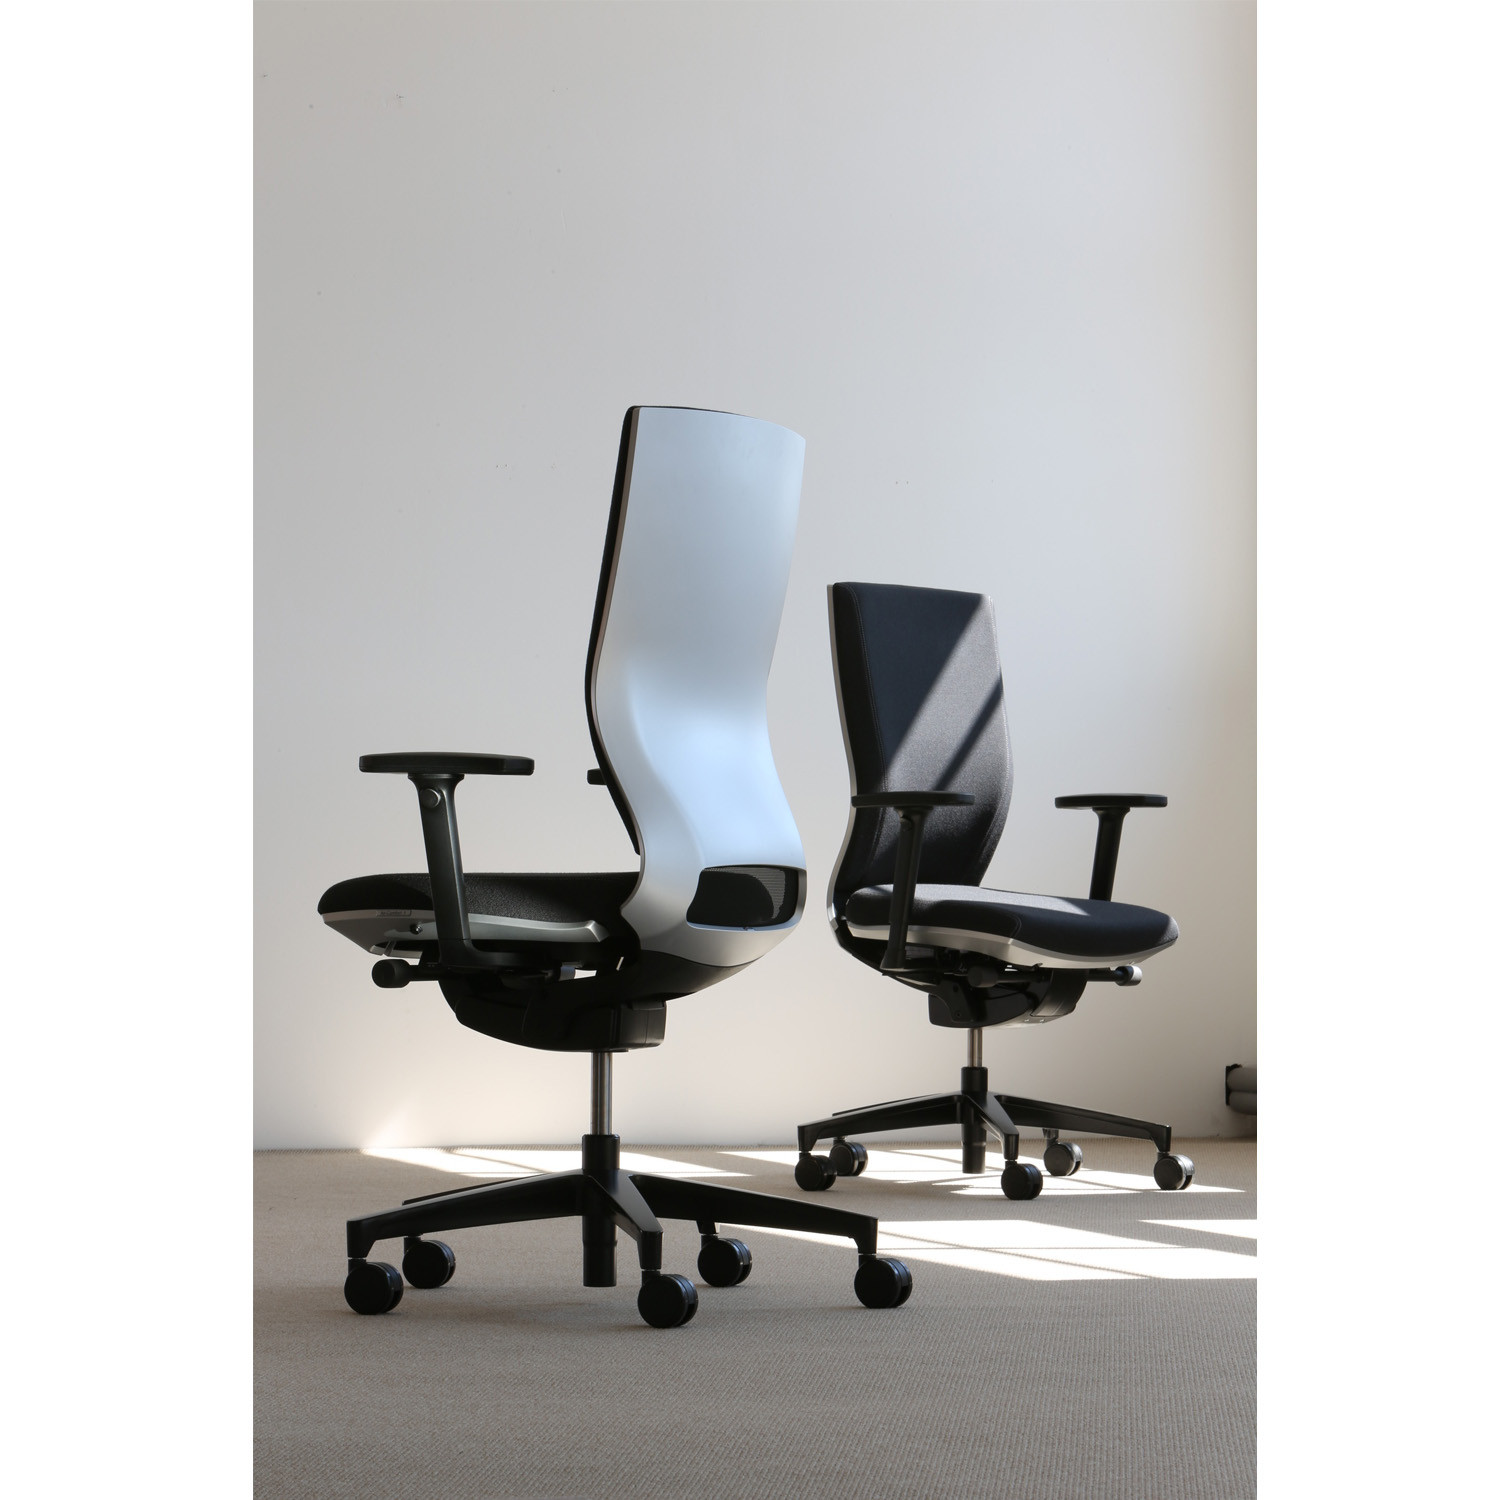 Moteo Executive Swivel Chairs by Klober